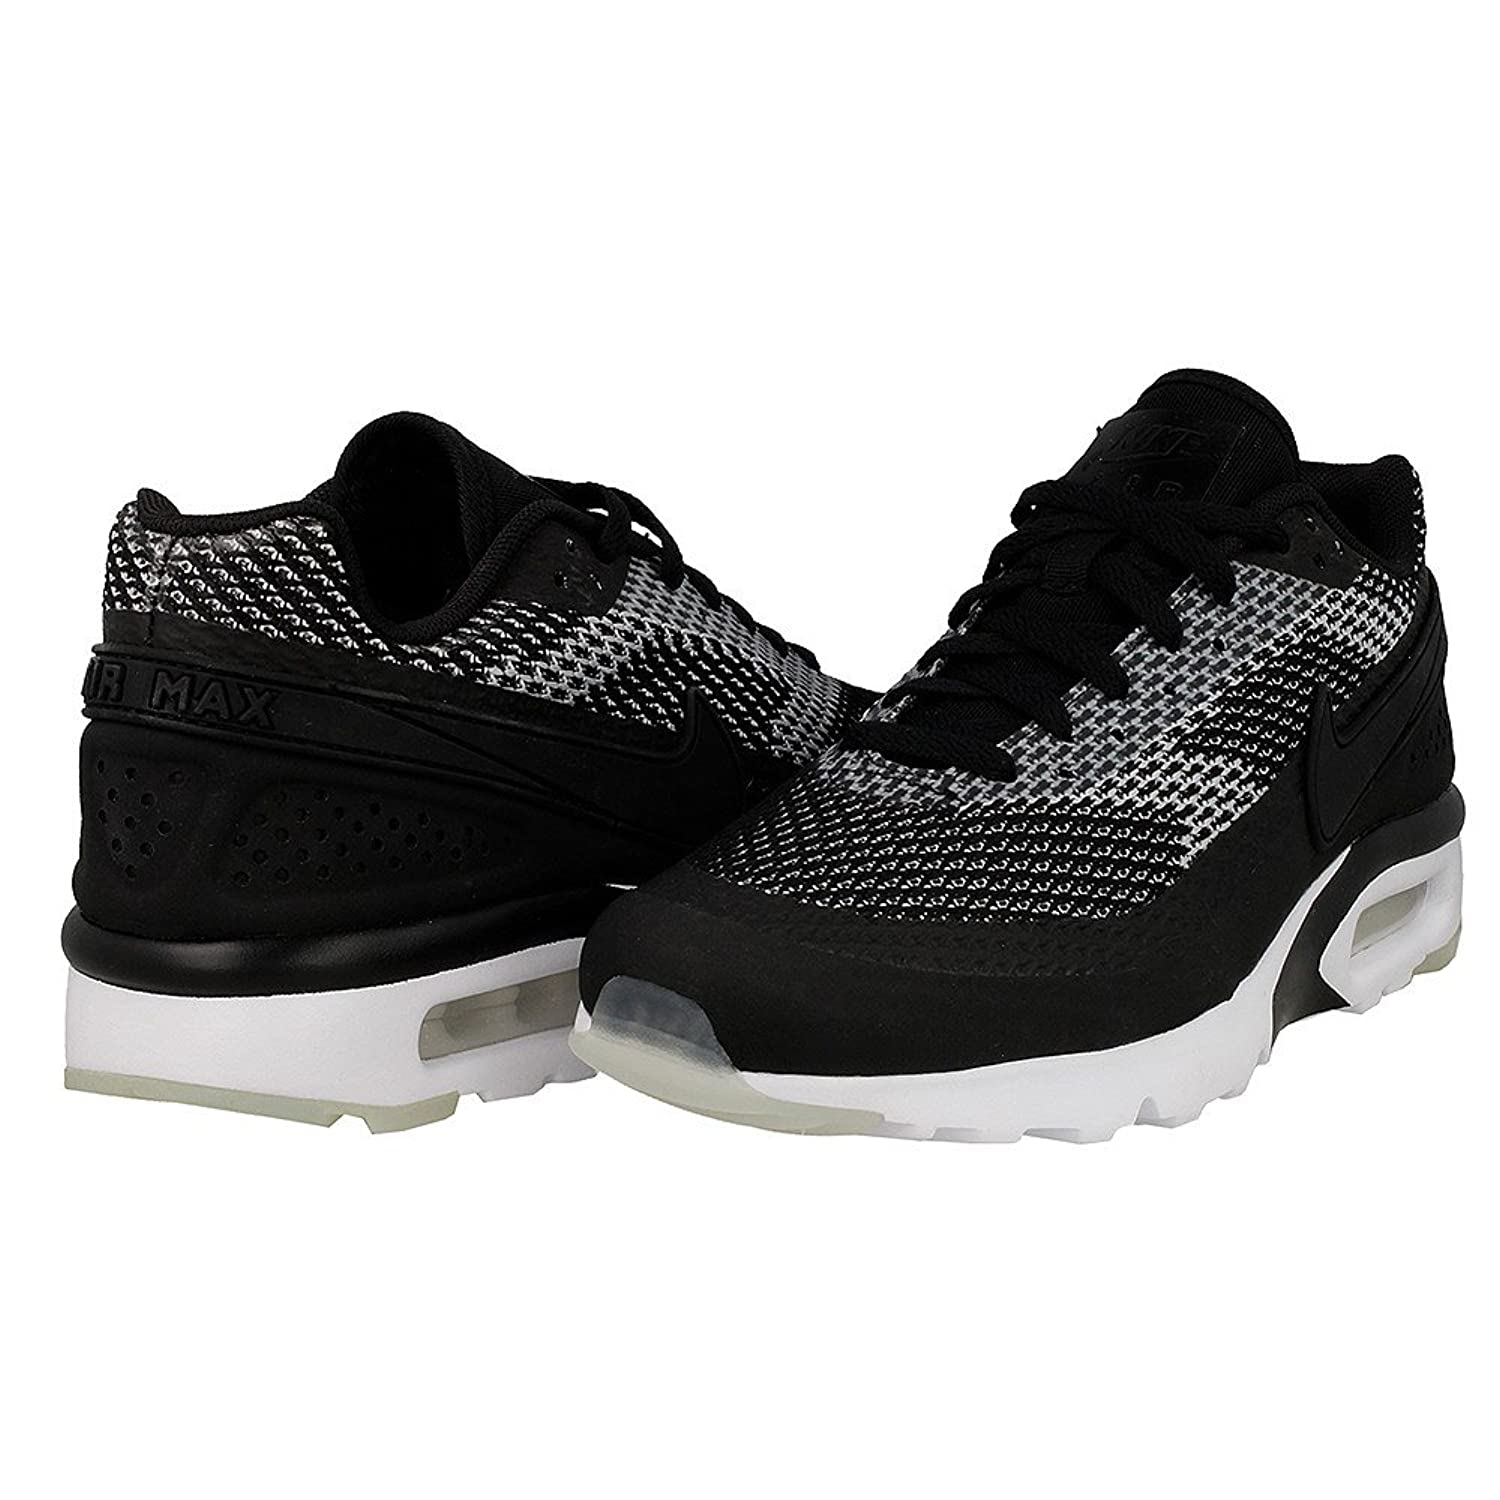 best loved f77ba 2baf9 ... Amazon.com  Nike Air Max BW Ultra Knit Jacquard KJCRD Premium PRM  Sneaker black ...